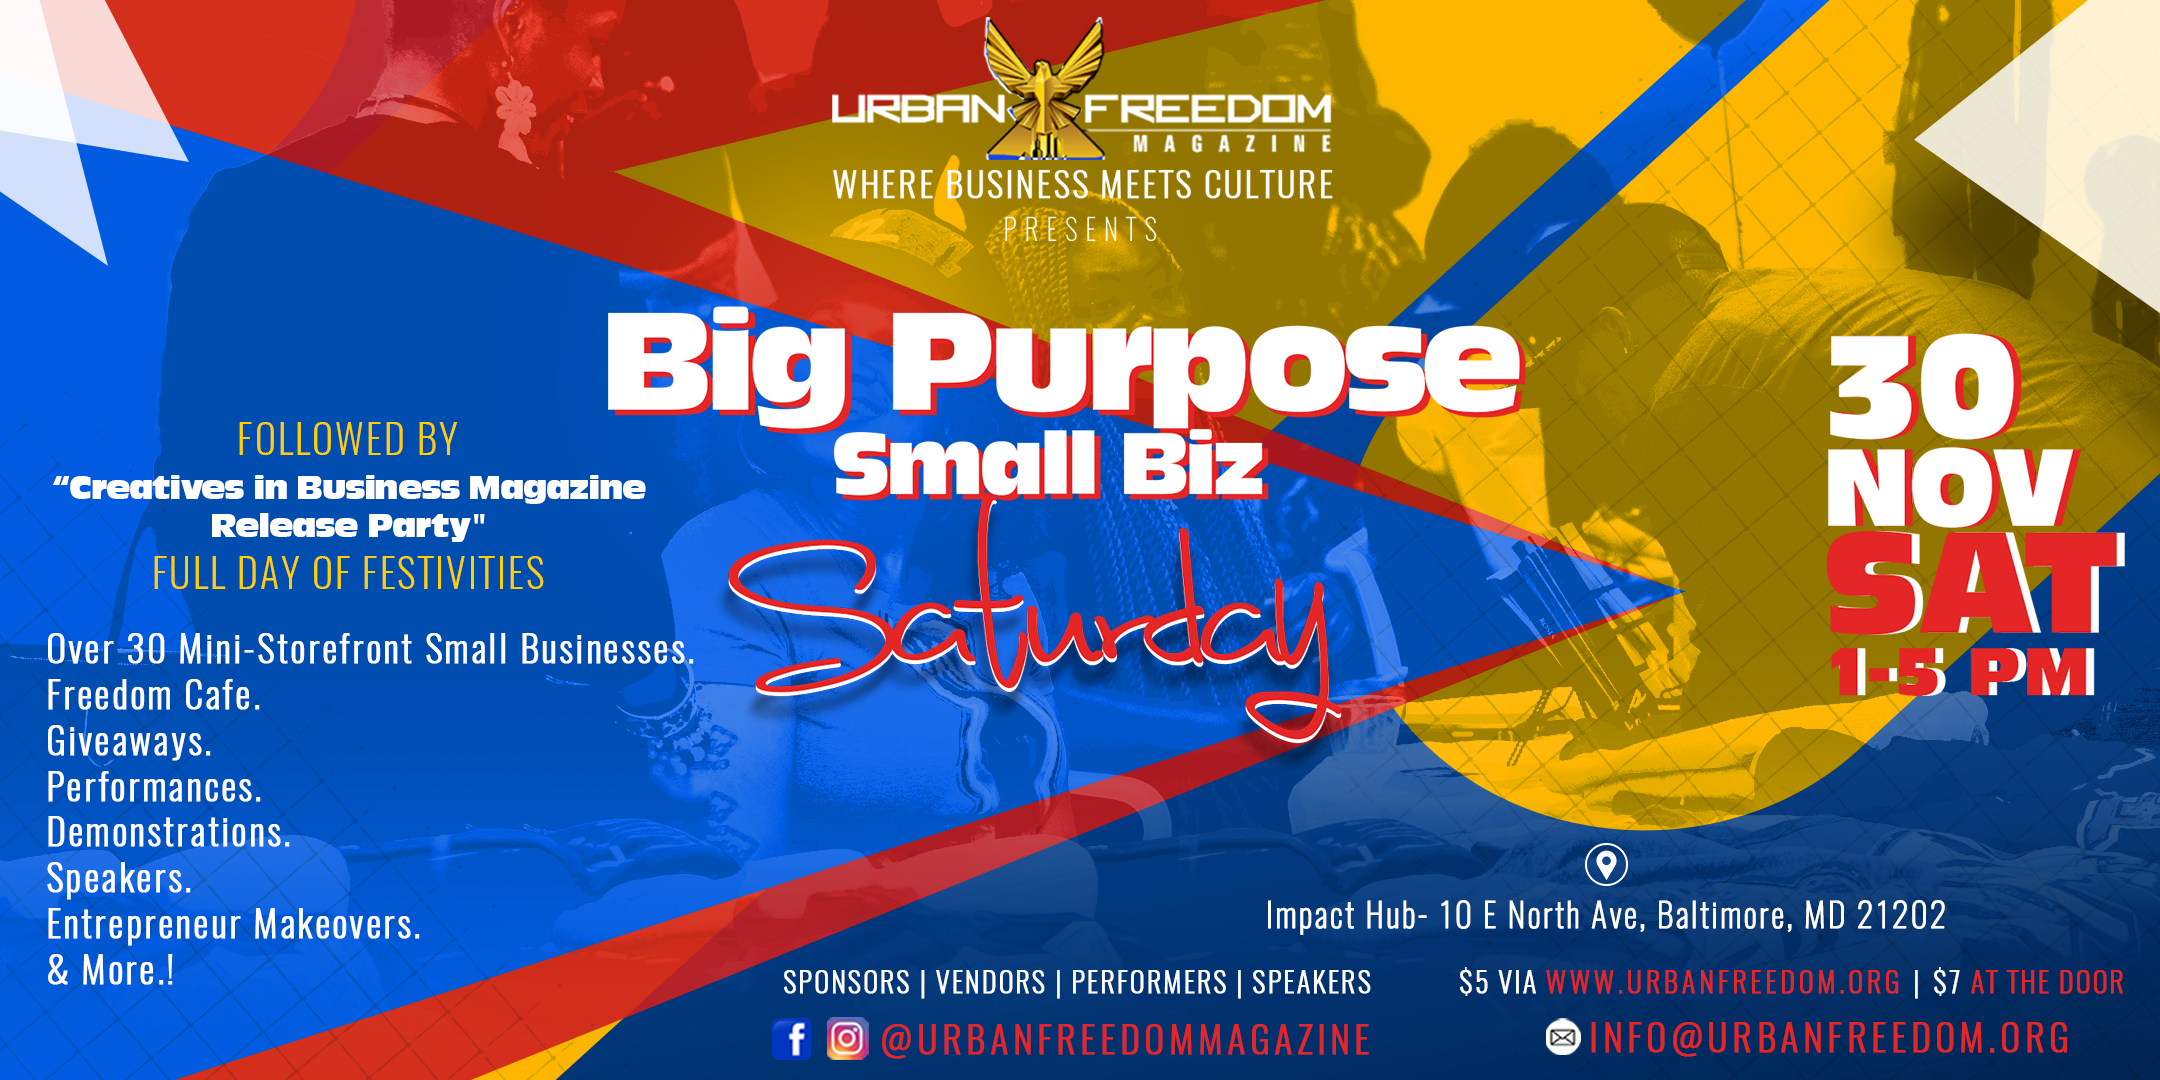 Big Purpose Small Business Saturday Baltimore November 30th Impact Hub Baltimore - Urban Freedom Magazine Presents